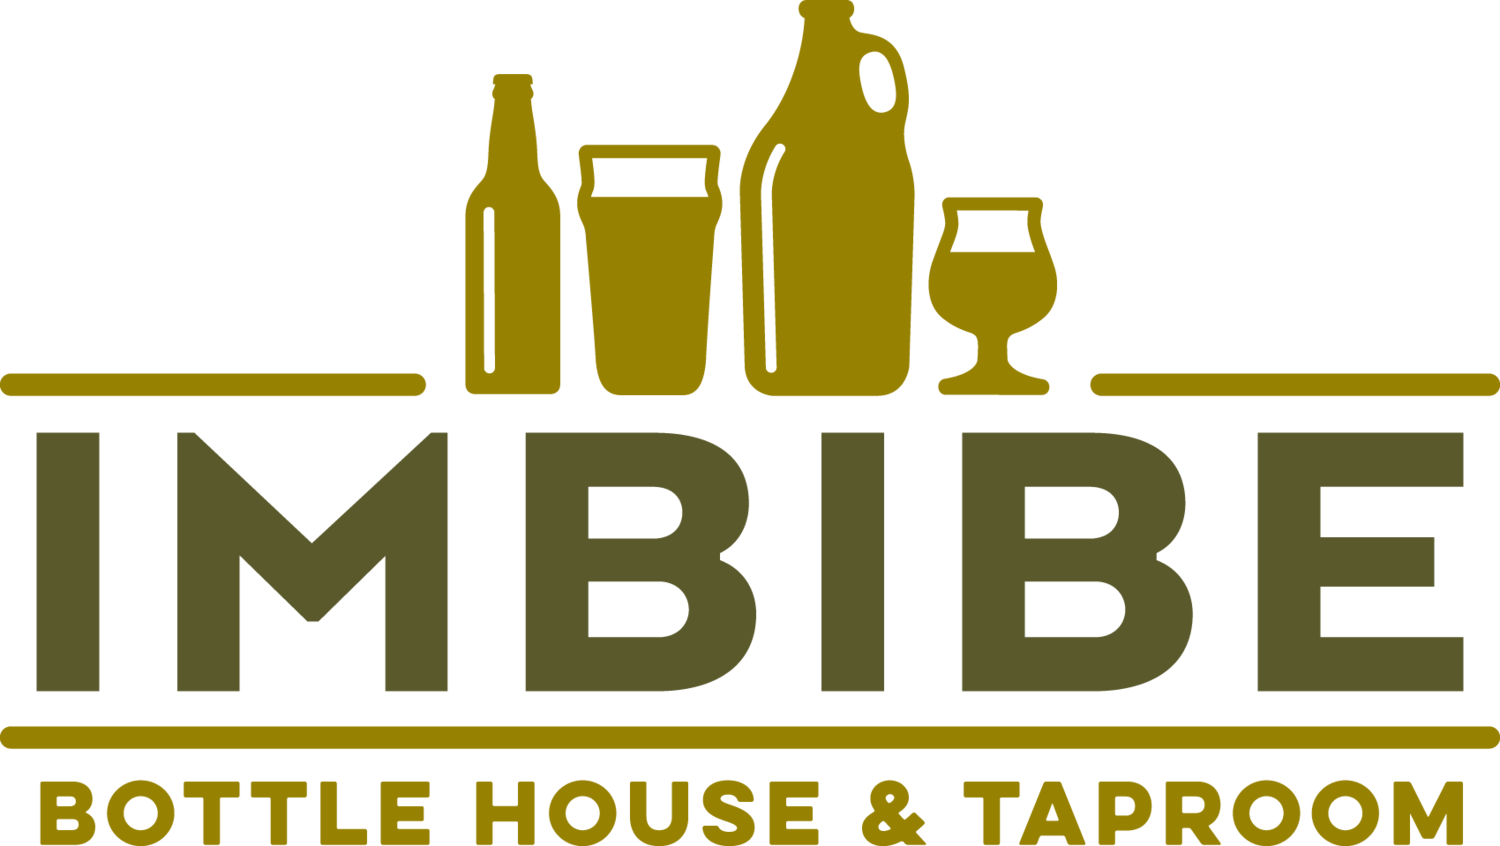 Imbibe Bottle House & Taproom